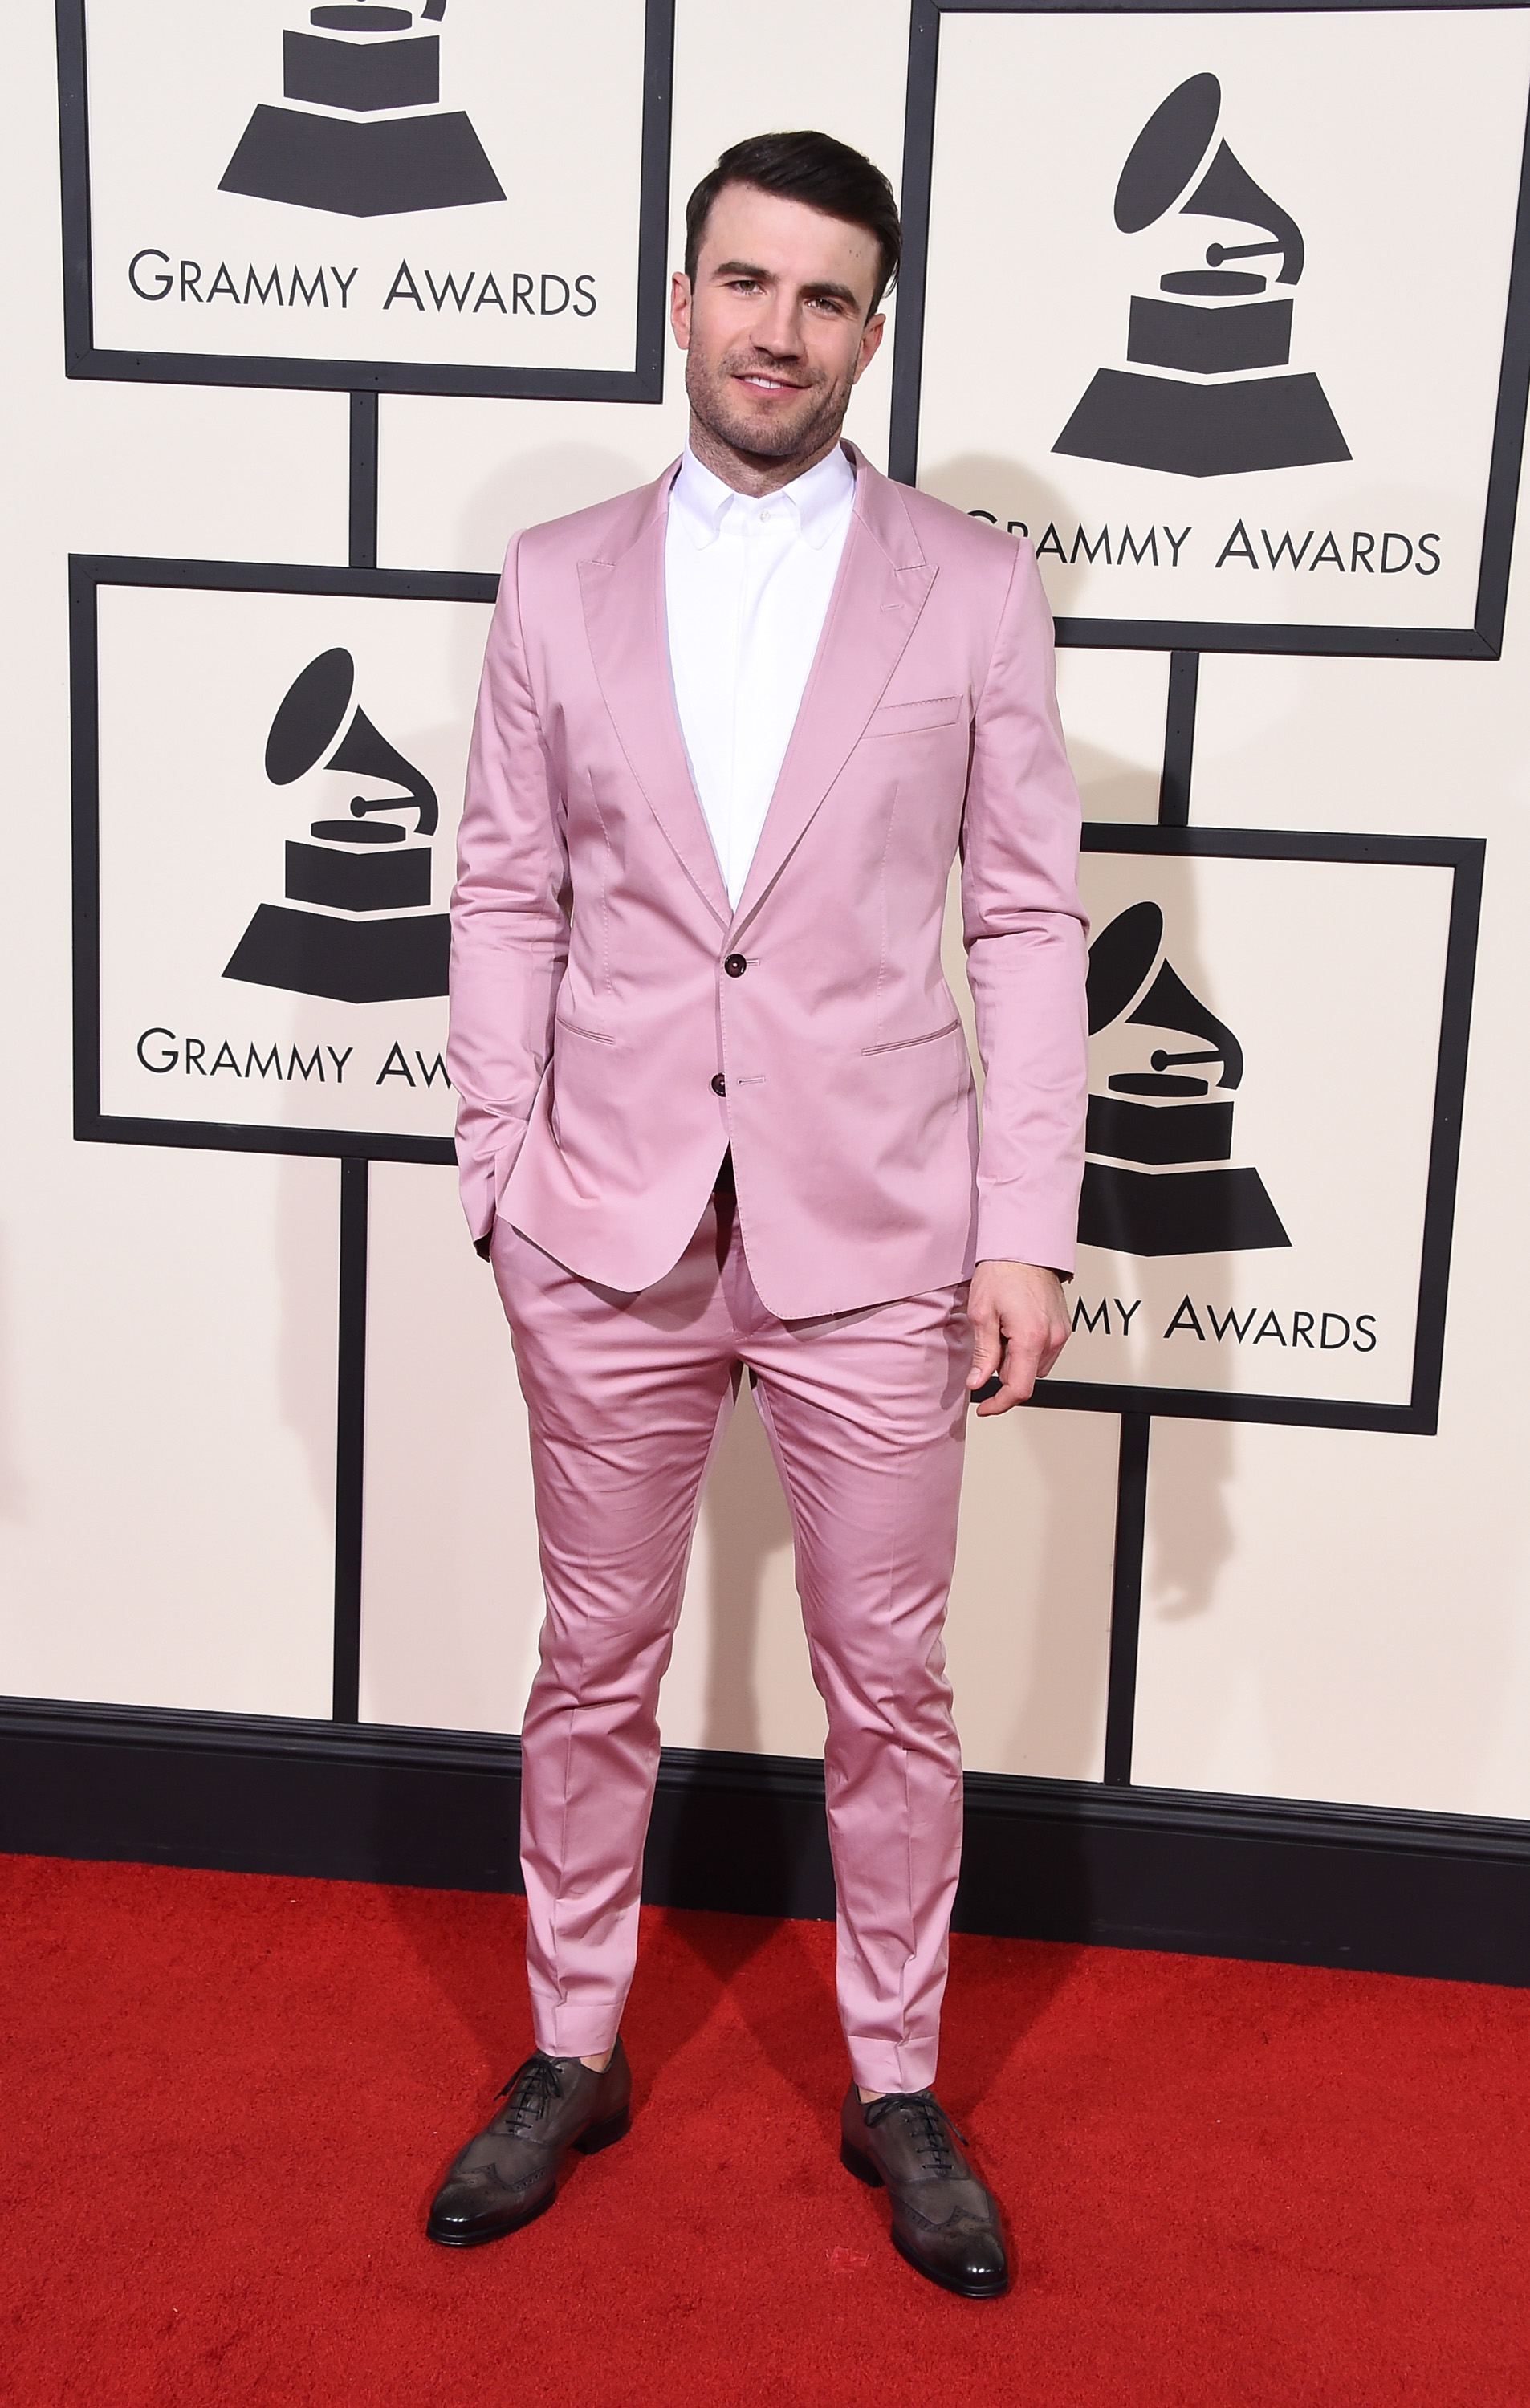 Sam Hunt attends the 58th GRAMMY Awards at Staples Center on Feb. 15, 2016 in Los Angeles.